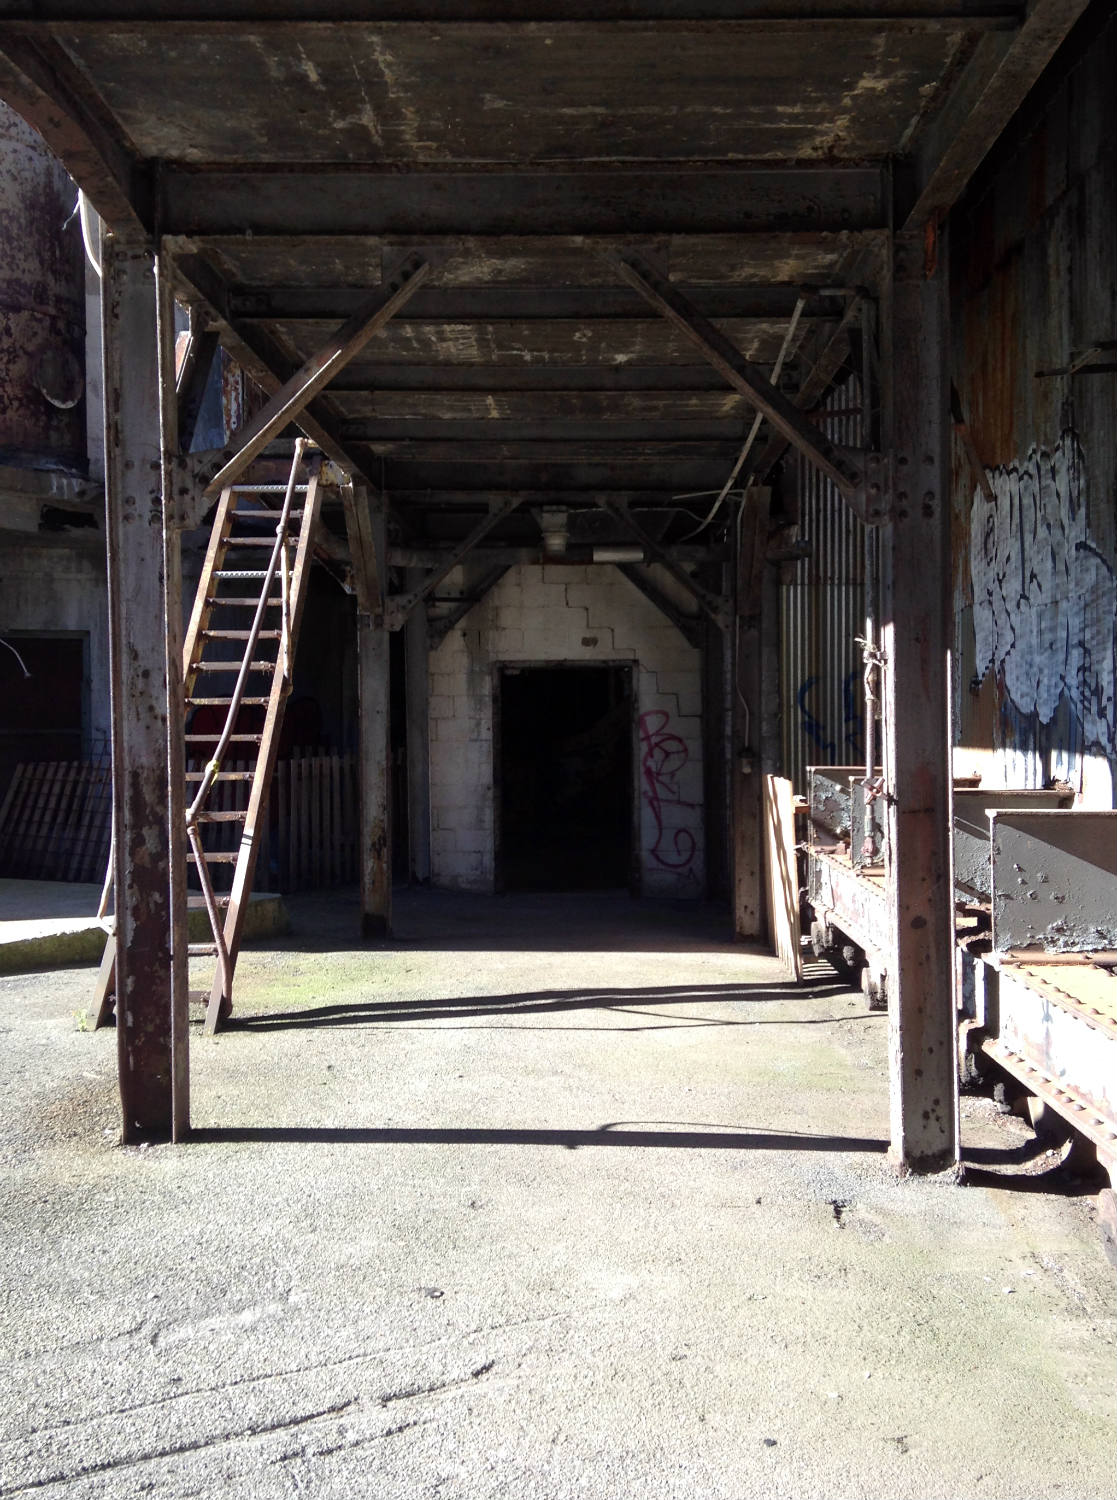 Doorway to American Silo in Buffalo, NY